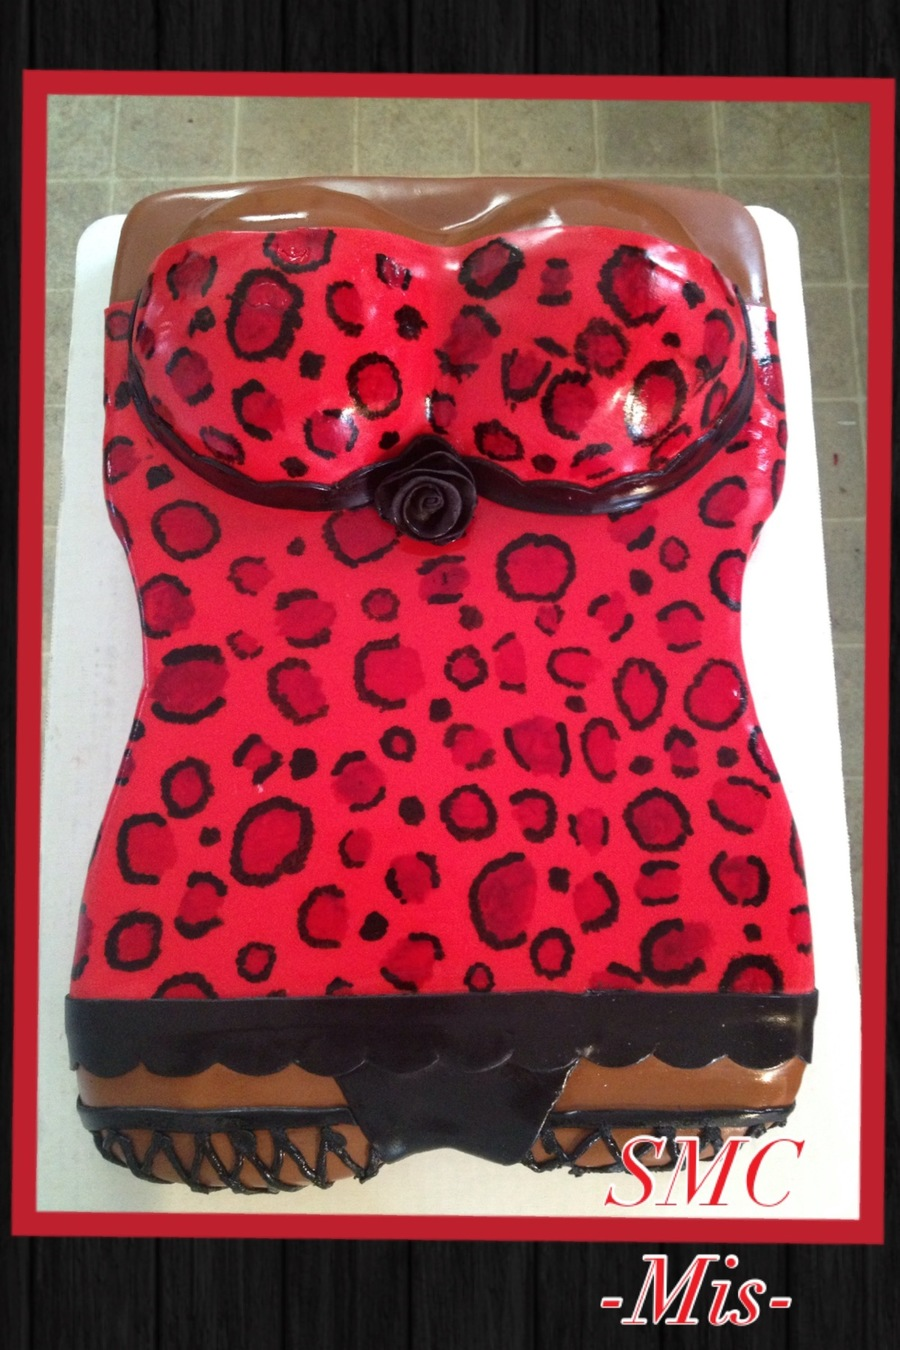 Leopard Print Corset All Covered In Fondant The Leopard Print Was Hand Painted Cake Flavor Is 12 White And Strawberry W Vanilla Butte on Cake Central